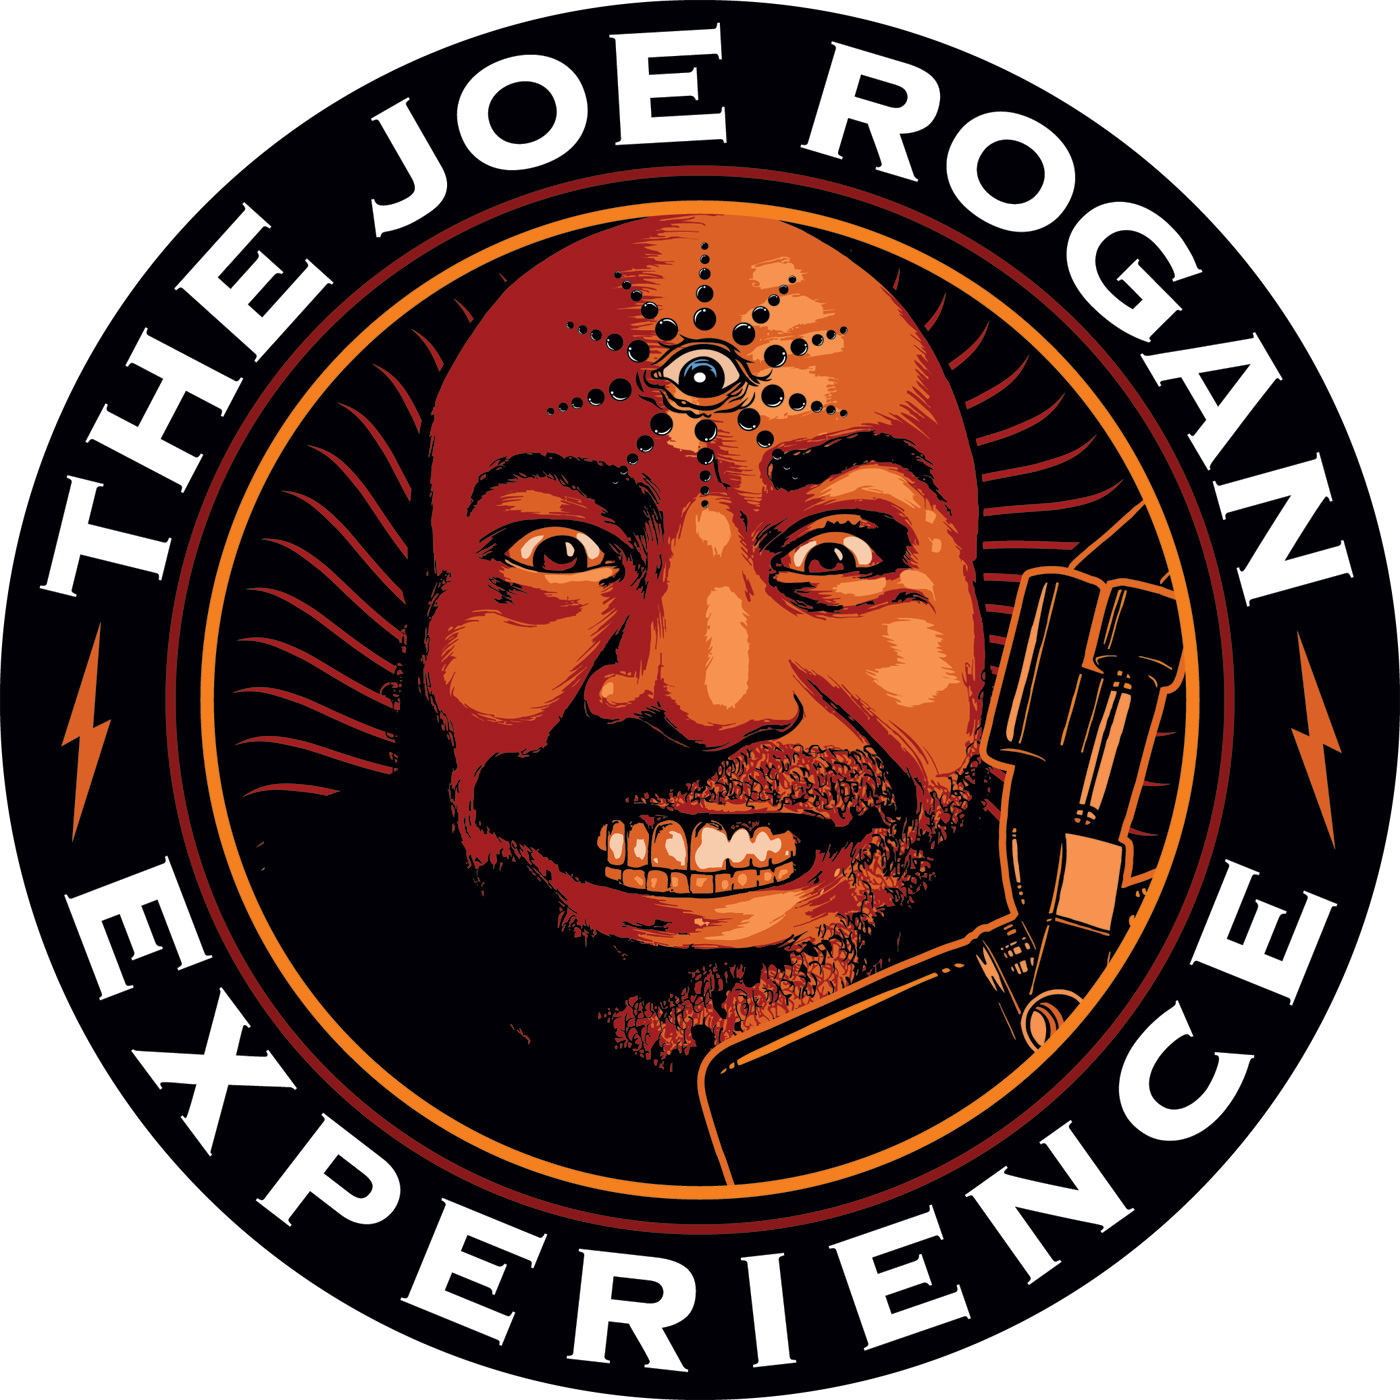 The Joe Rogan Experience PODCAST #146 - Ari Shaffir, Brian Redban